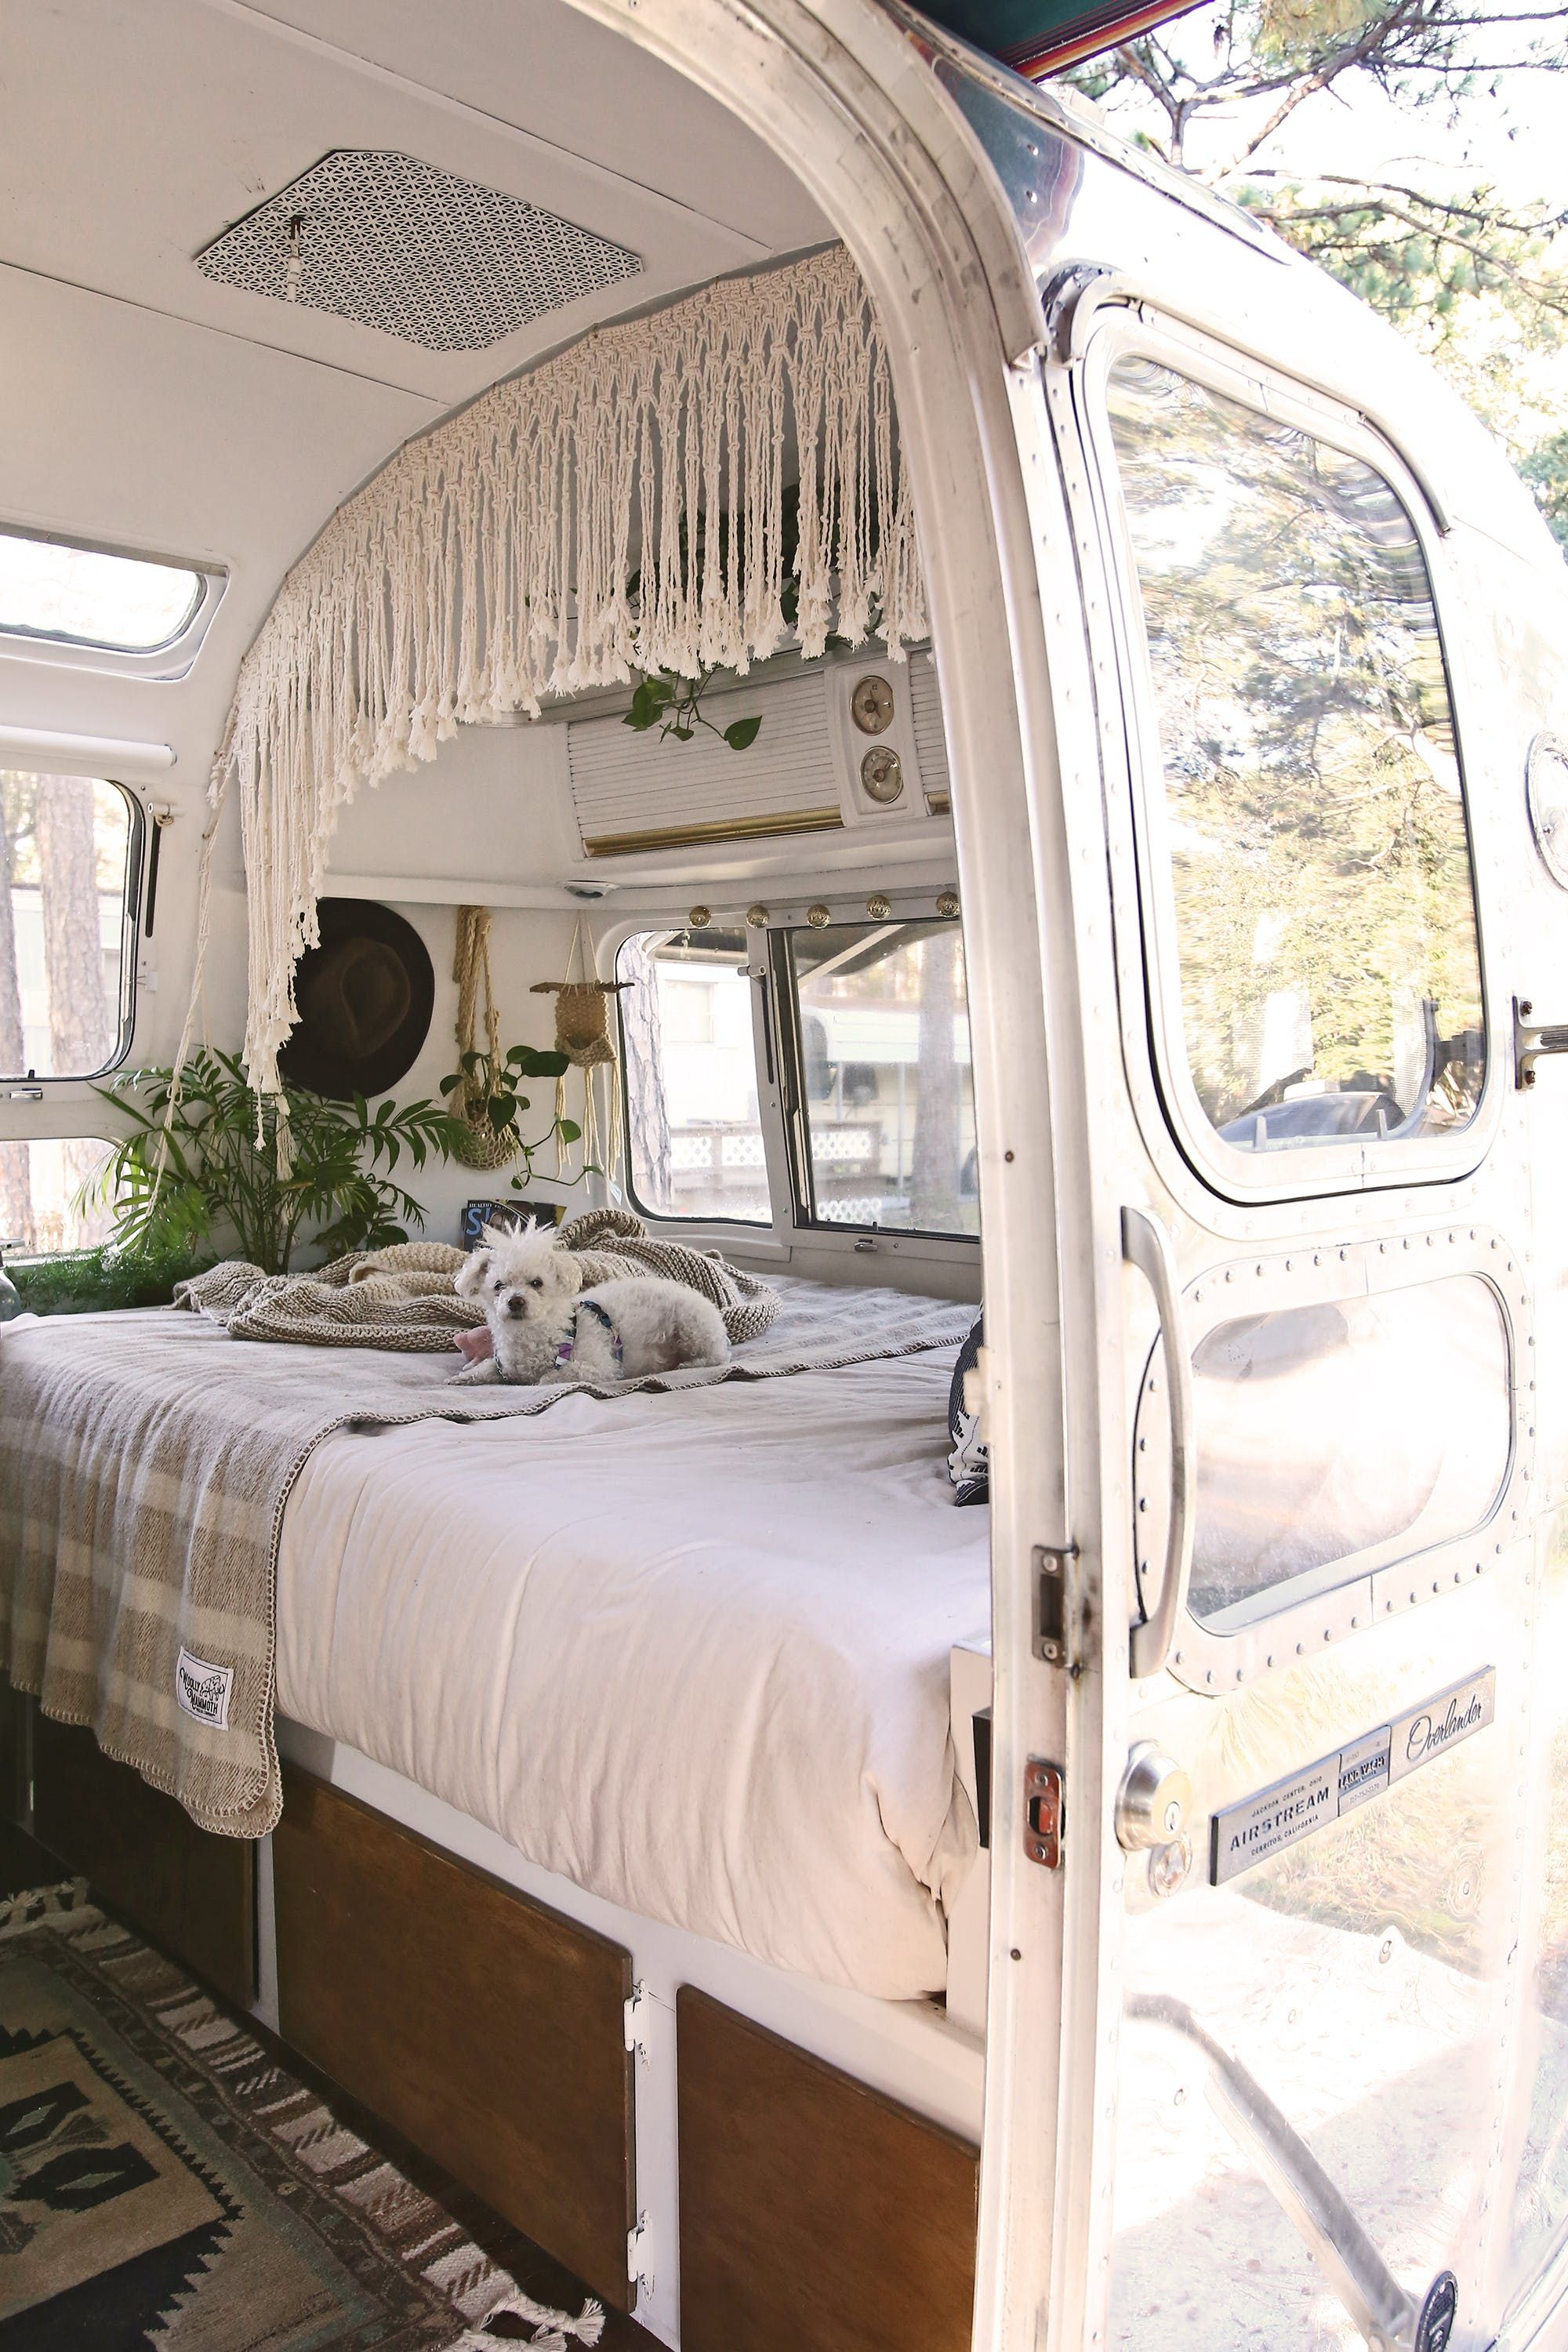 The Mini and Marvelous Mavis the Airstream